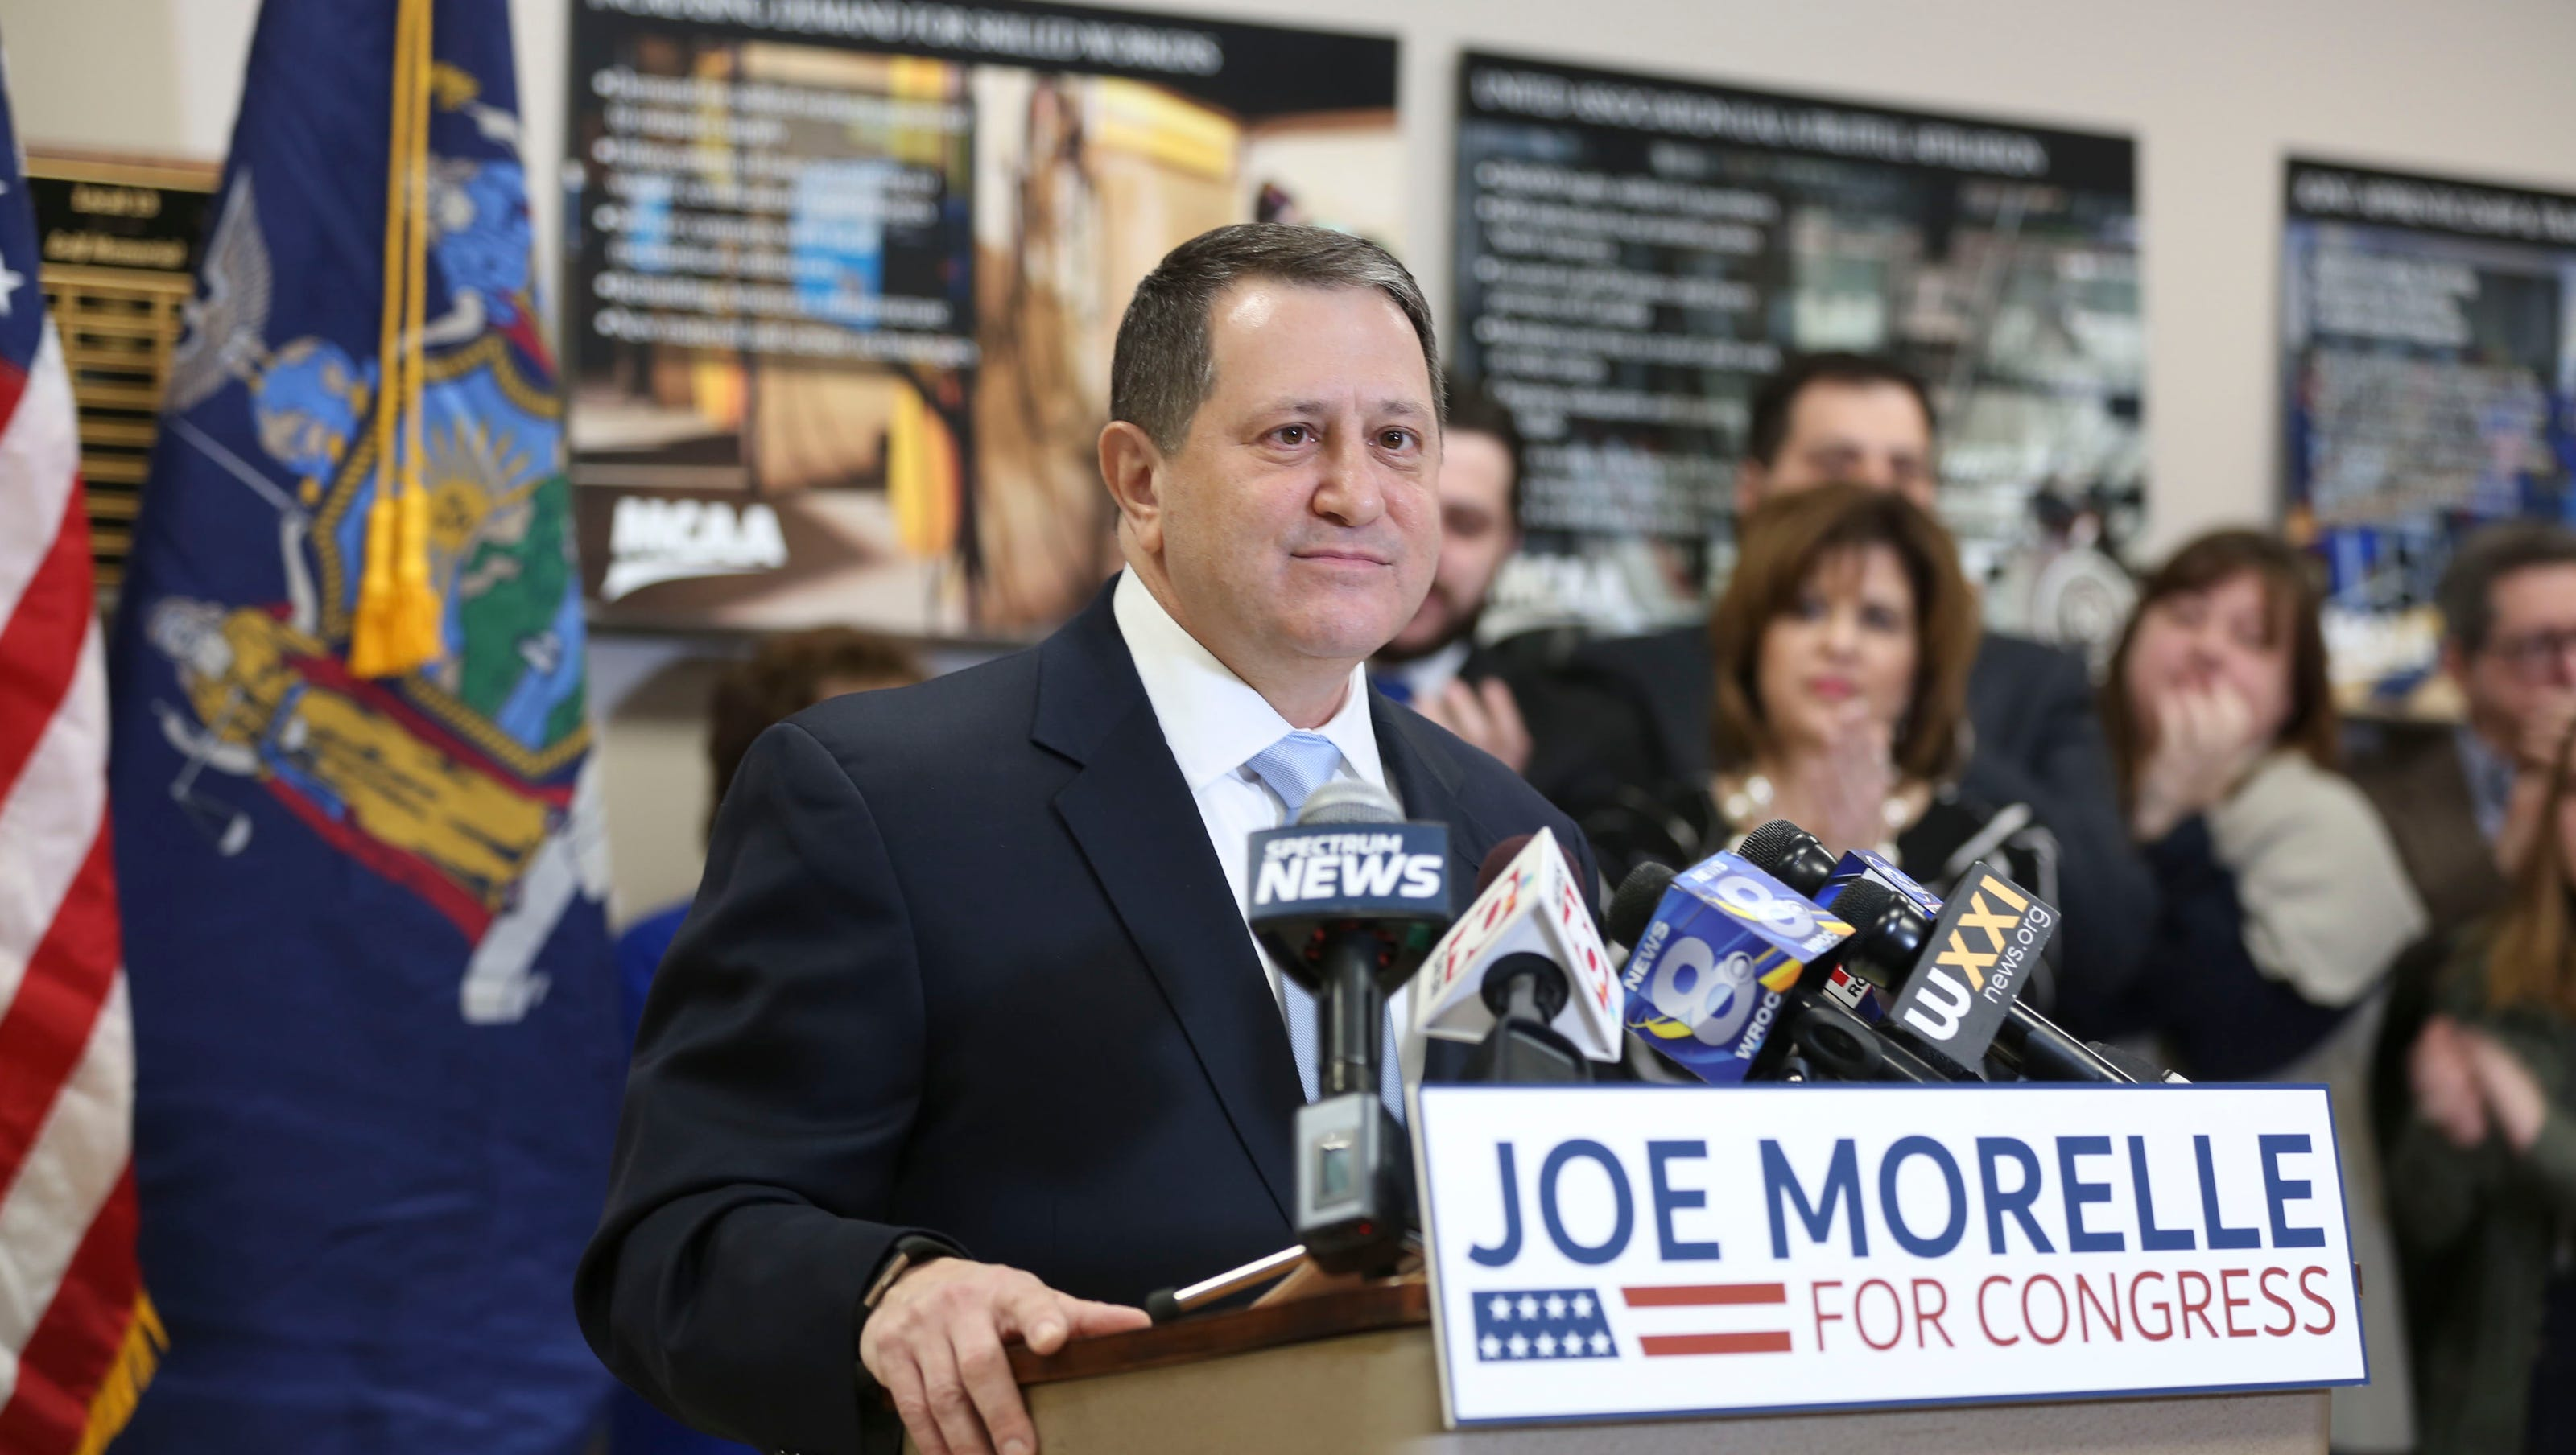 Joe Morelle Rebuffs Embattled Developer Bob Morgan In